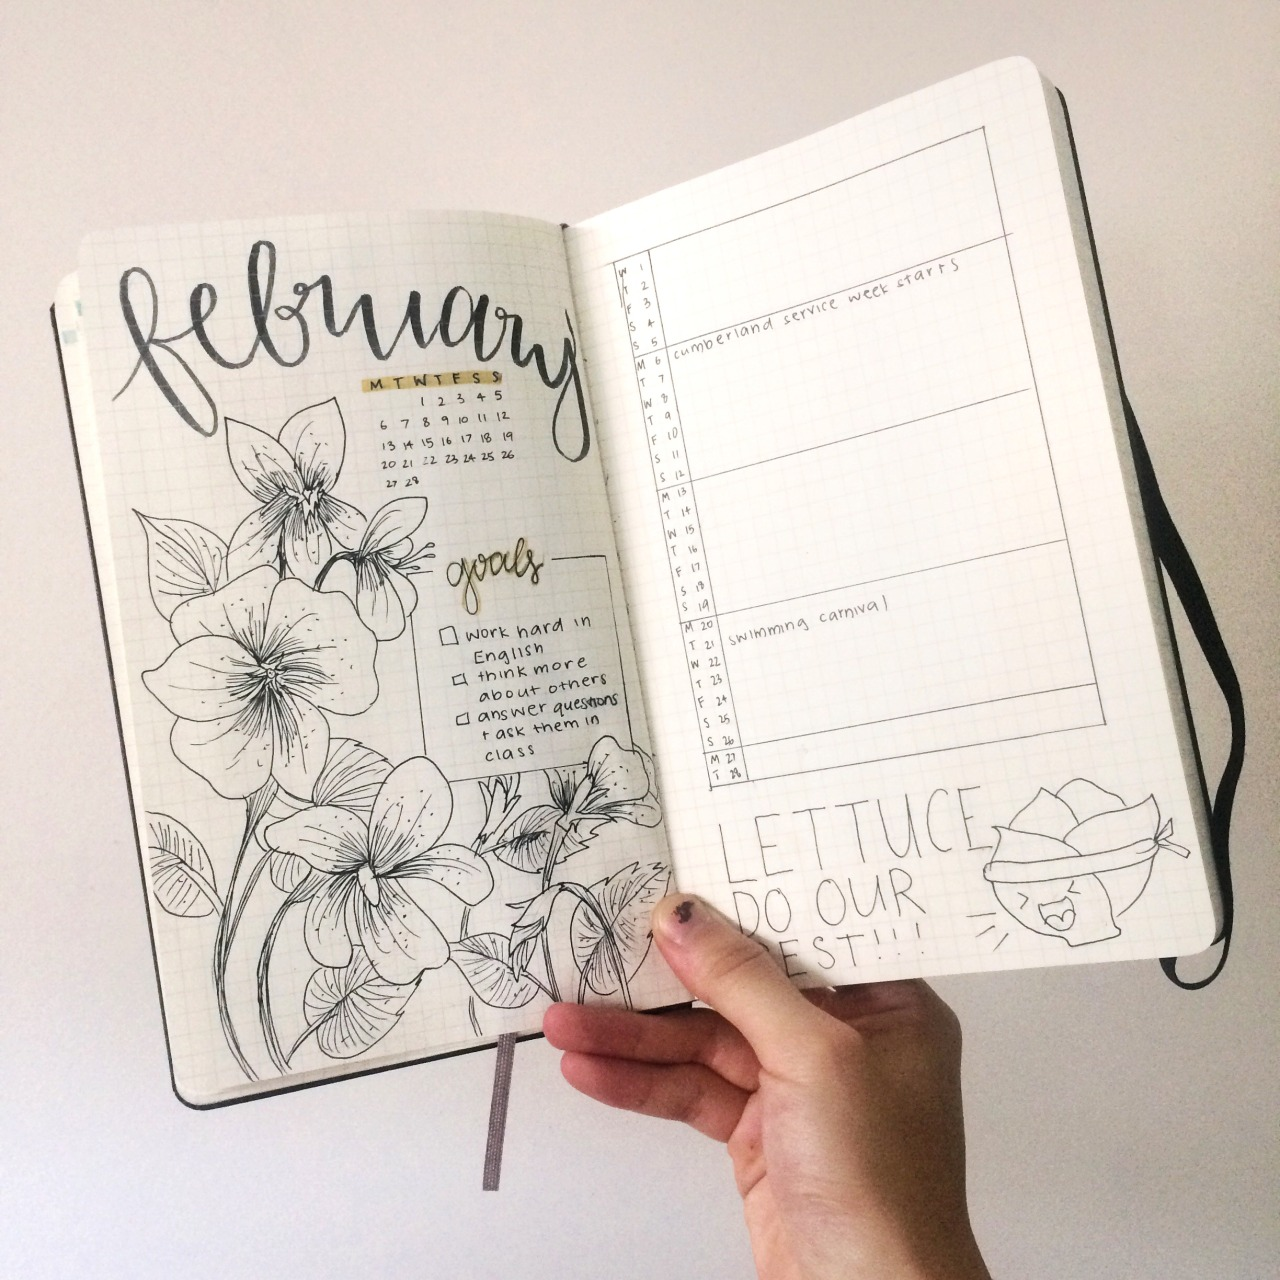 13 Monthly Bullet Journal Spreadys That You WIll Love!! This is EXACTLY what I needed! A list of bullet journal monthly spread ideas for inspiration. Cannot wait to try these bujo layouts next month. #bulletjournal #monthlyspreads